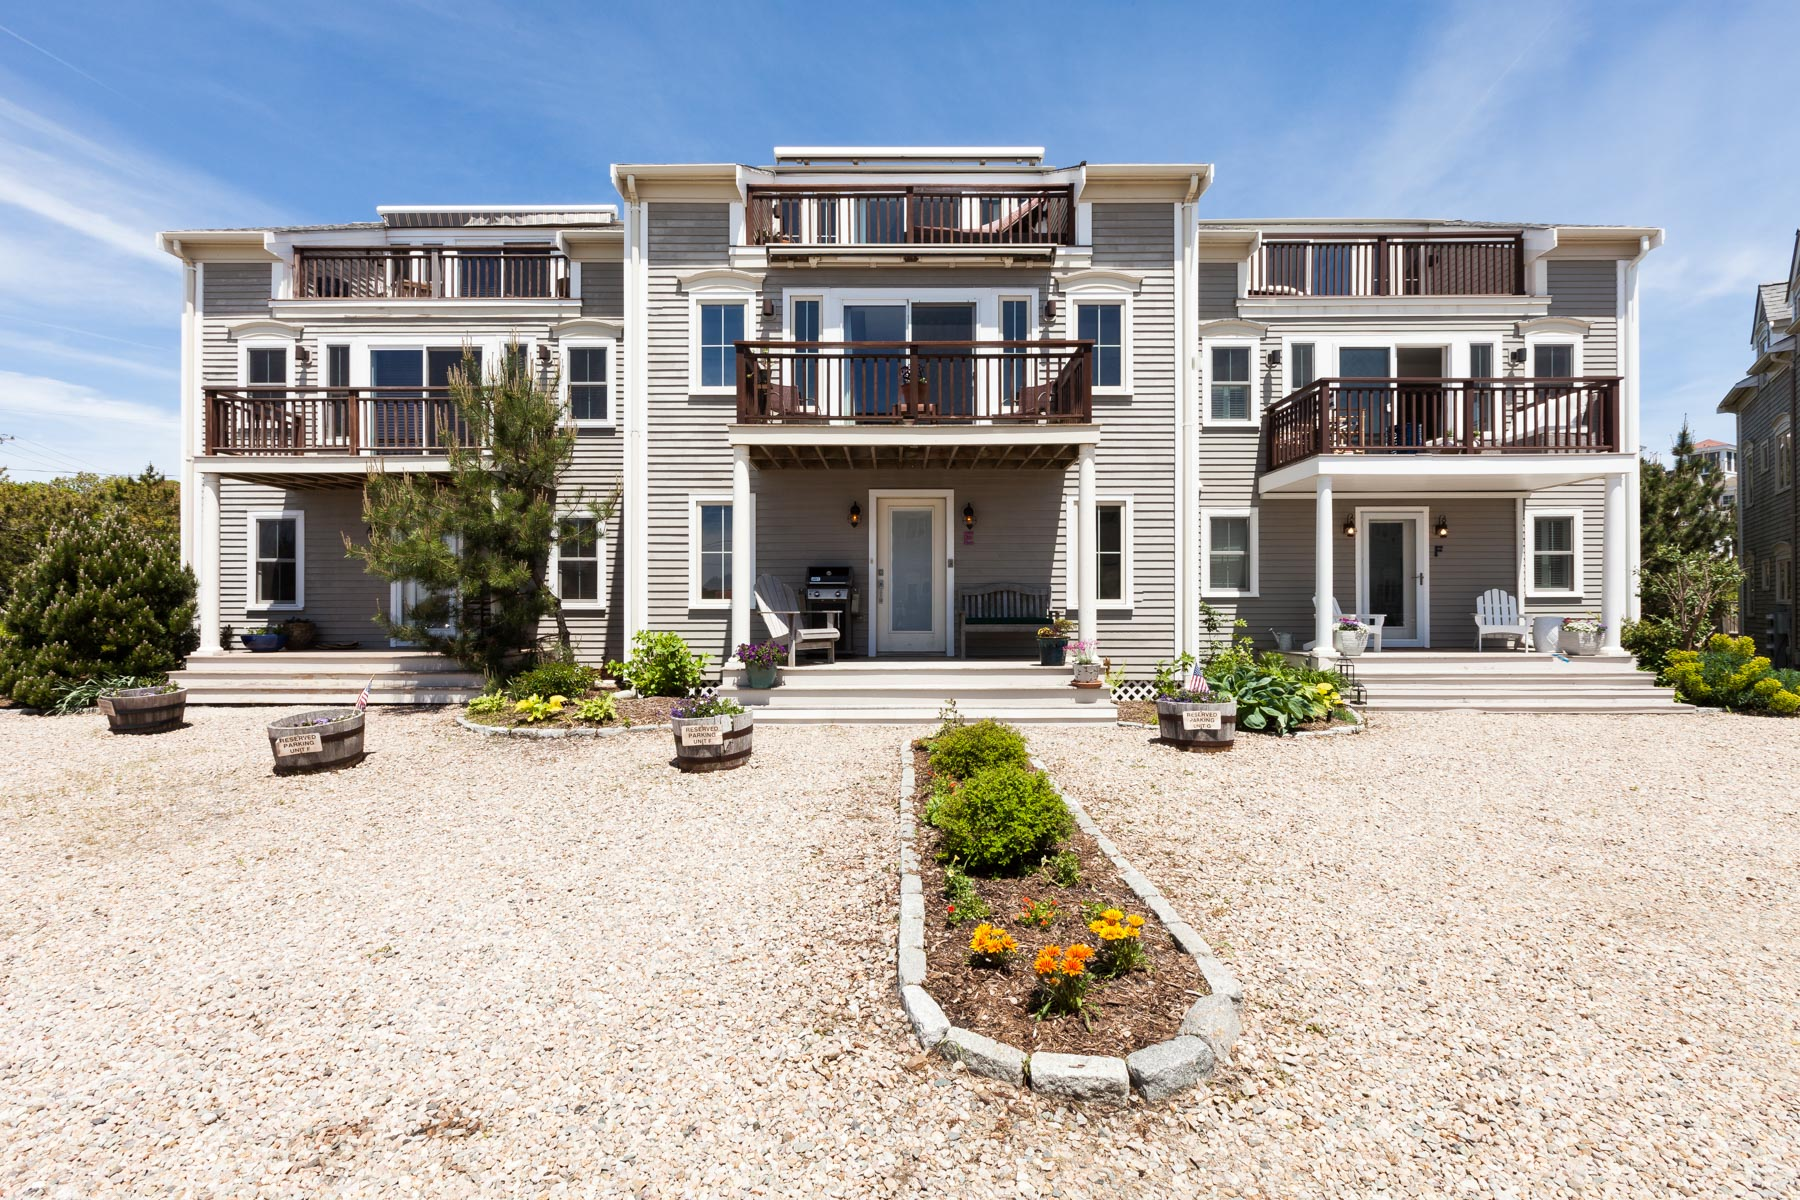 Condominium for Sale at West End Condominium with waterviews 15 Bradford Street Extension, Unit E Provincetown, Massachusetts, 02657 United States